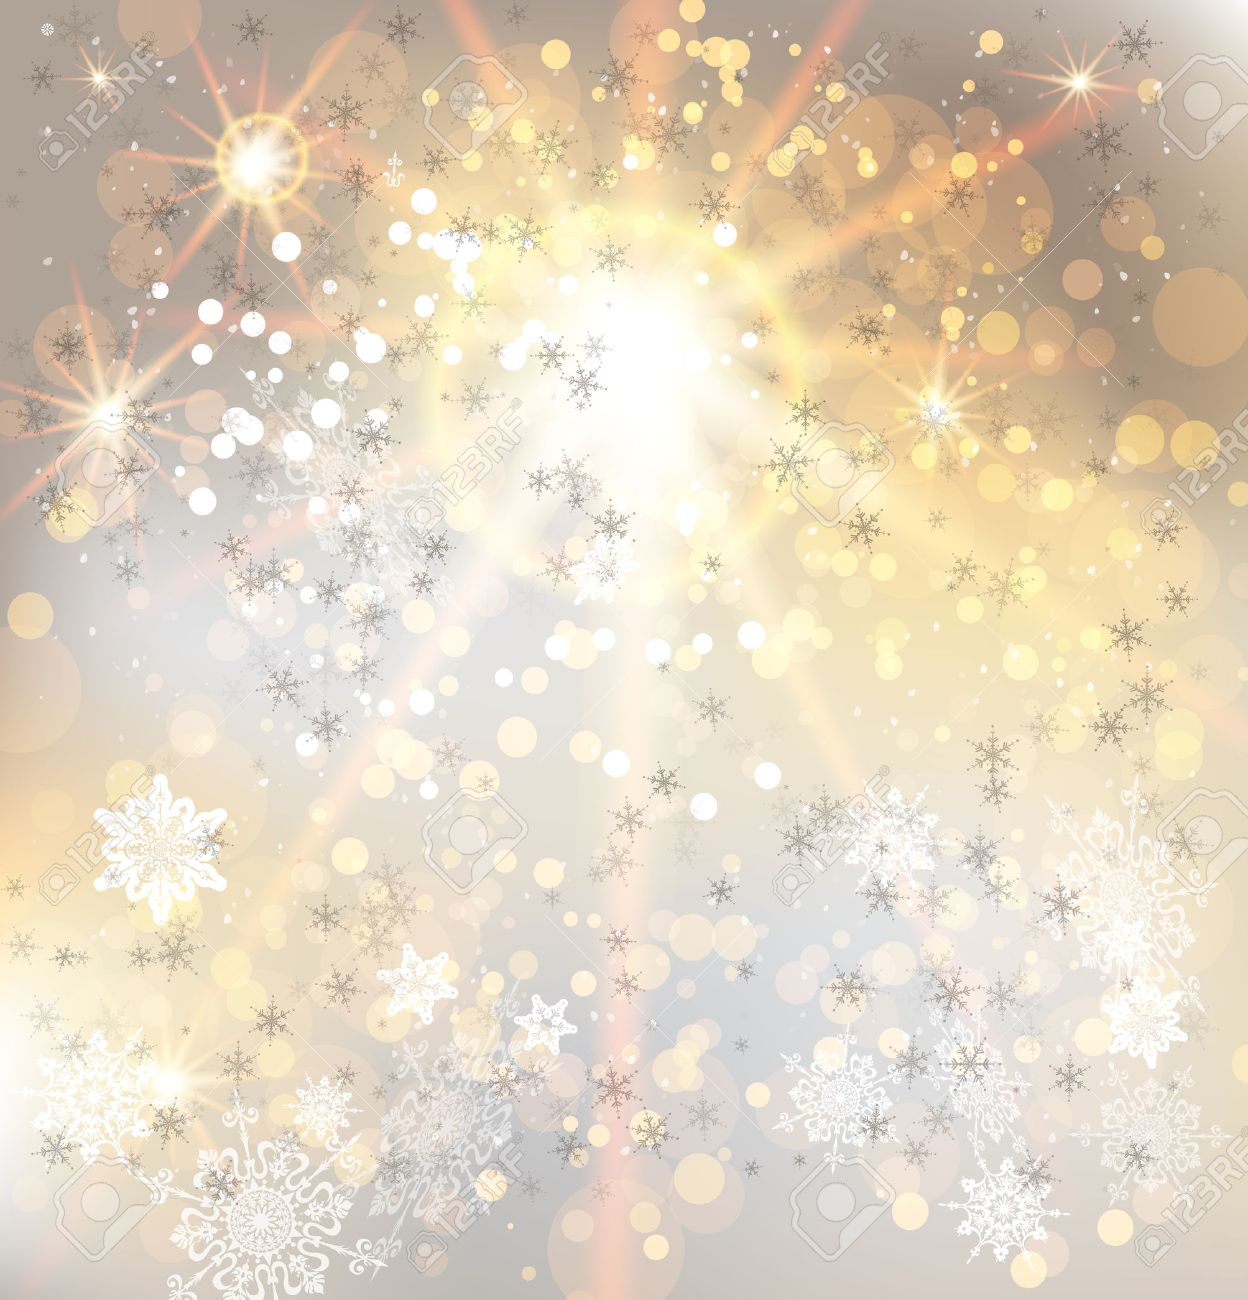 Golden light and snowflakes. Festive vector background. - 32786089